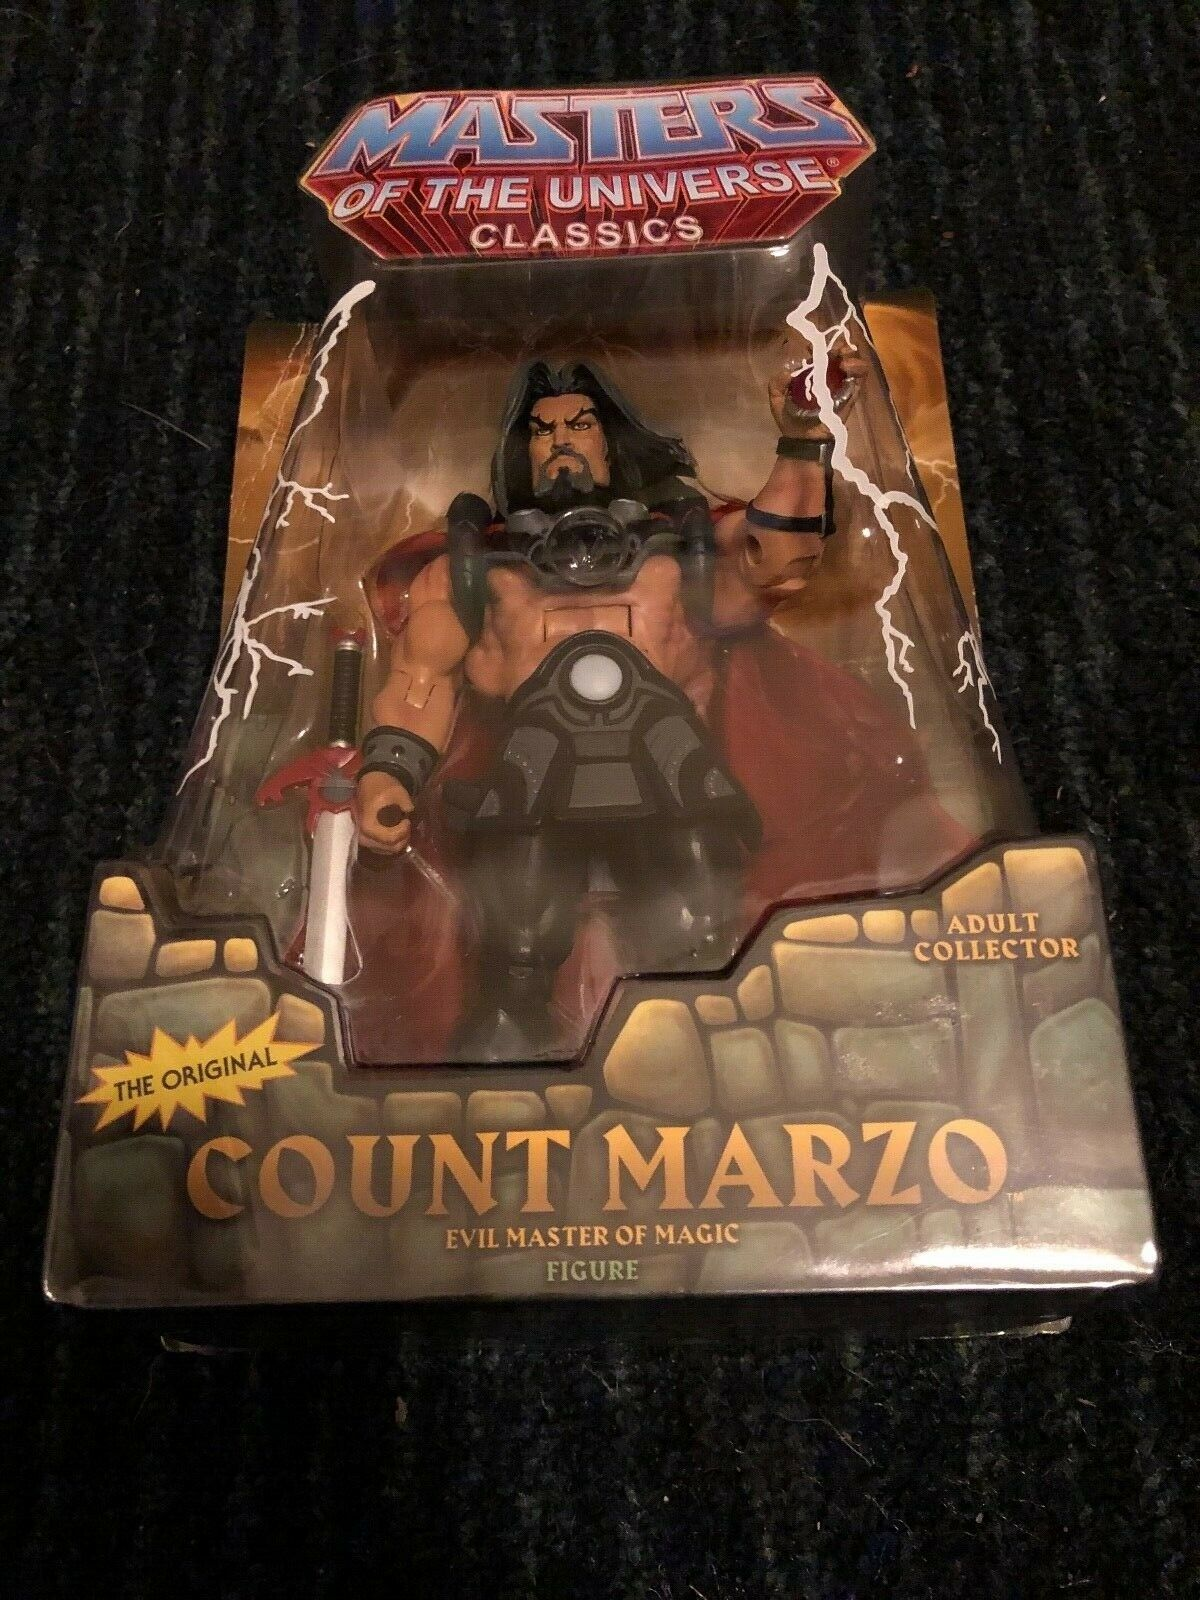 LOT OF 8 MASTERS MASTERS MASTERS OF THE UNIVERSE CLASSICS ACTION FIGURES, MOSSMAN CATRA ETC. NEW 1b5066